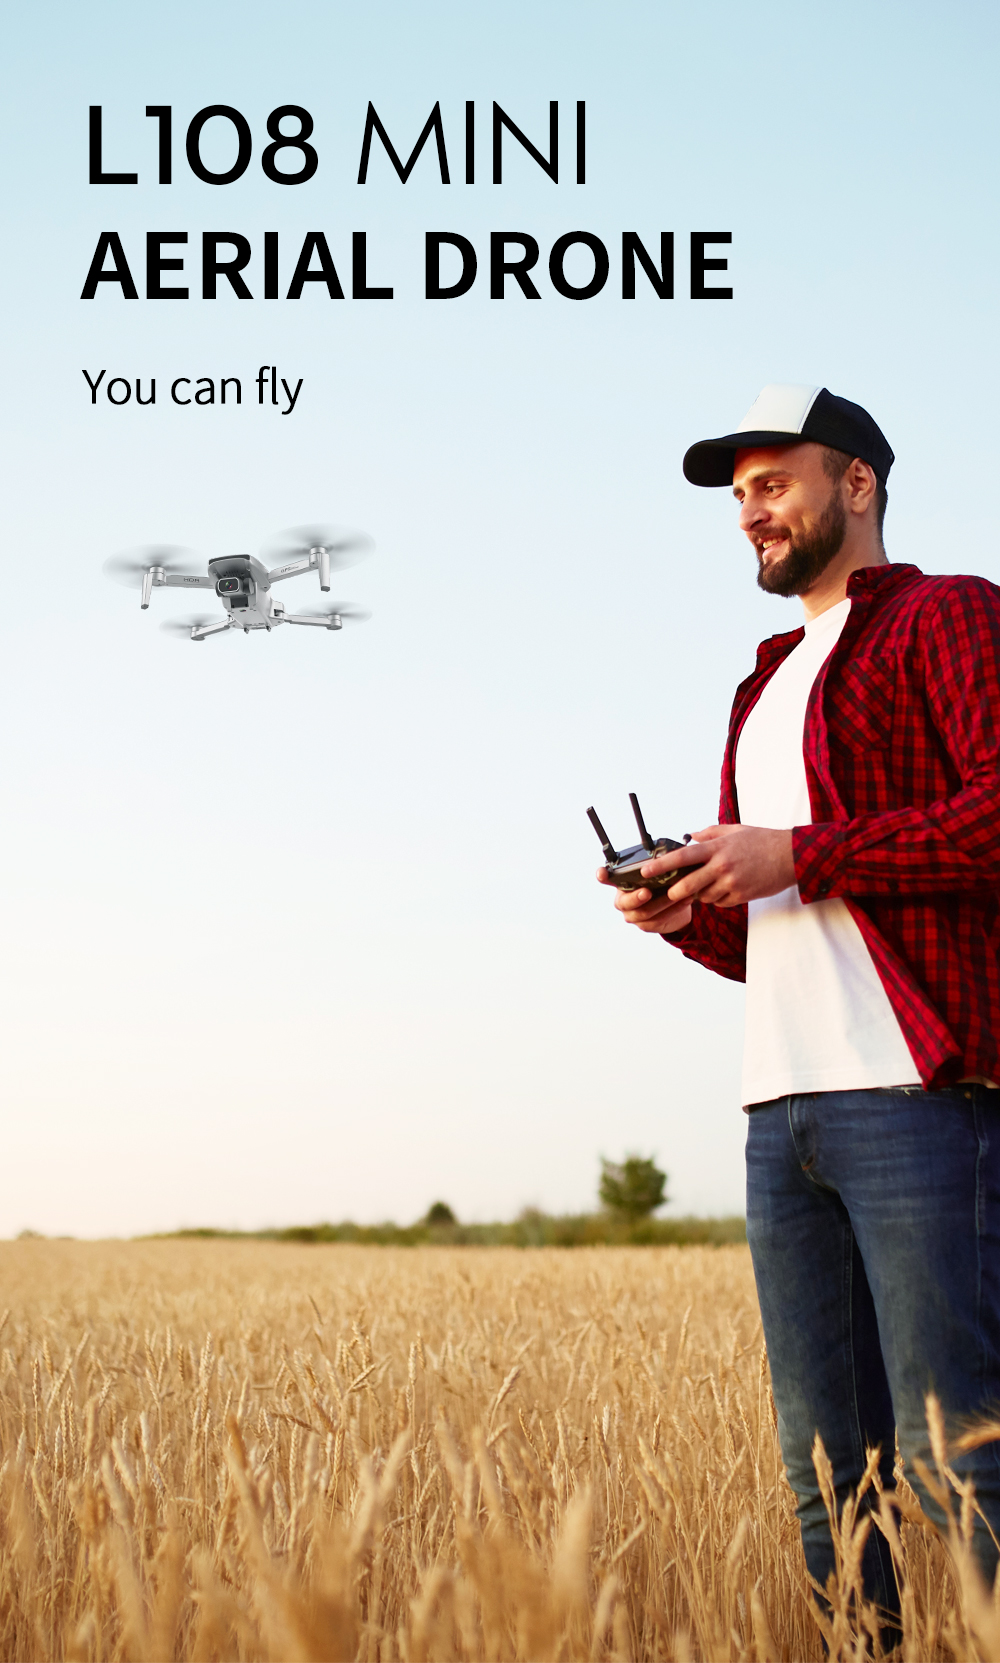 L108 Brushless Folding RC Quadcopter Drone Aircraft Toy - White